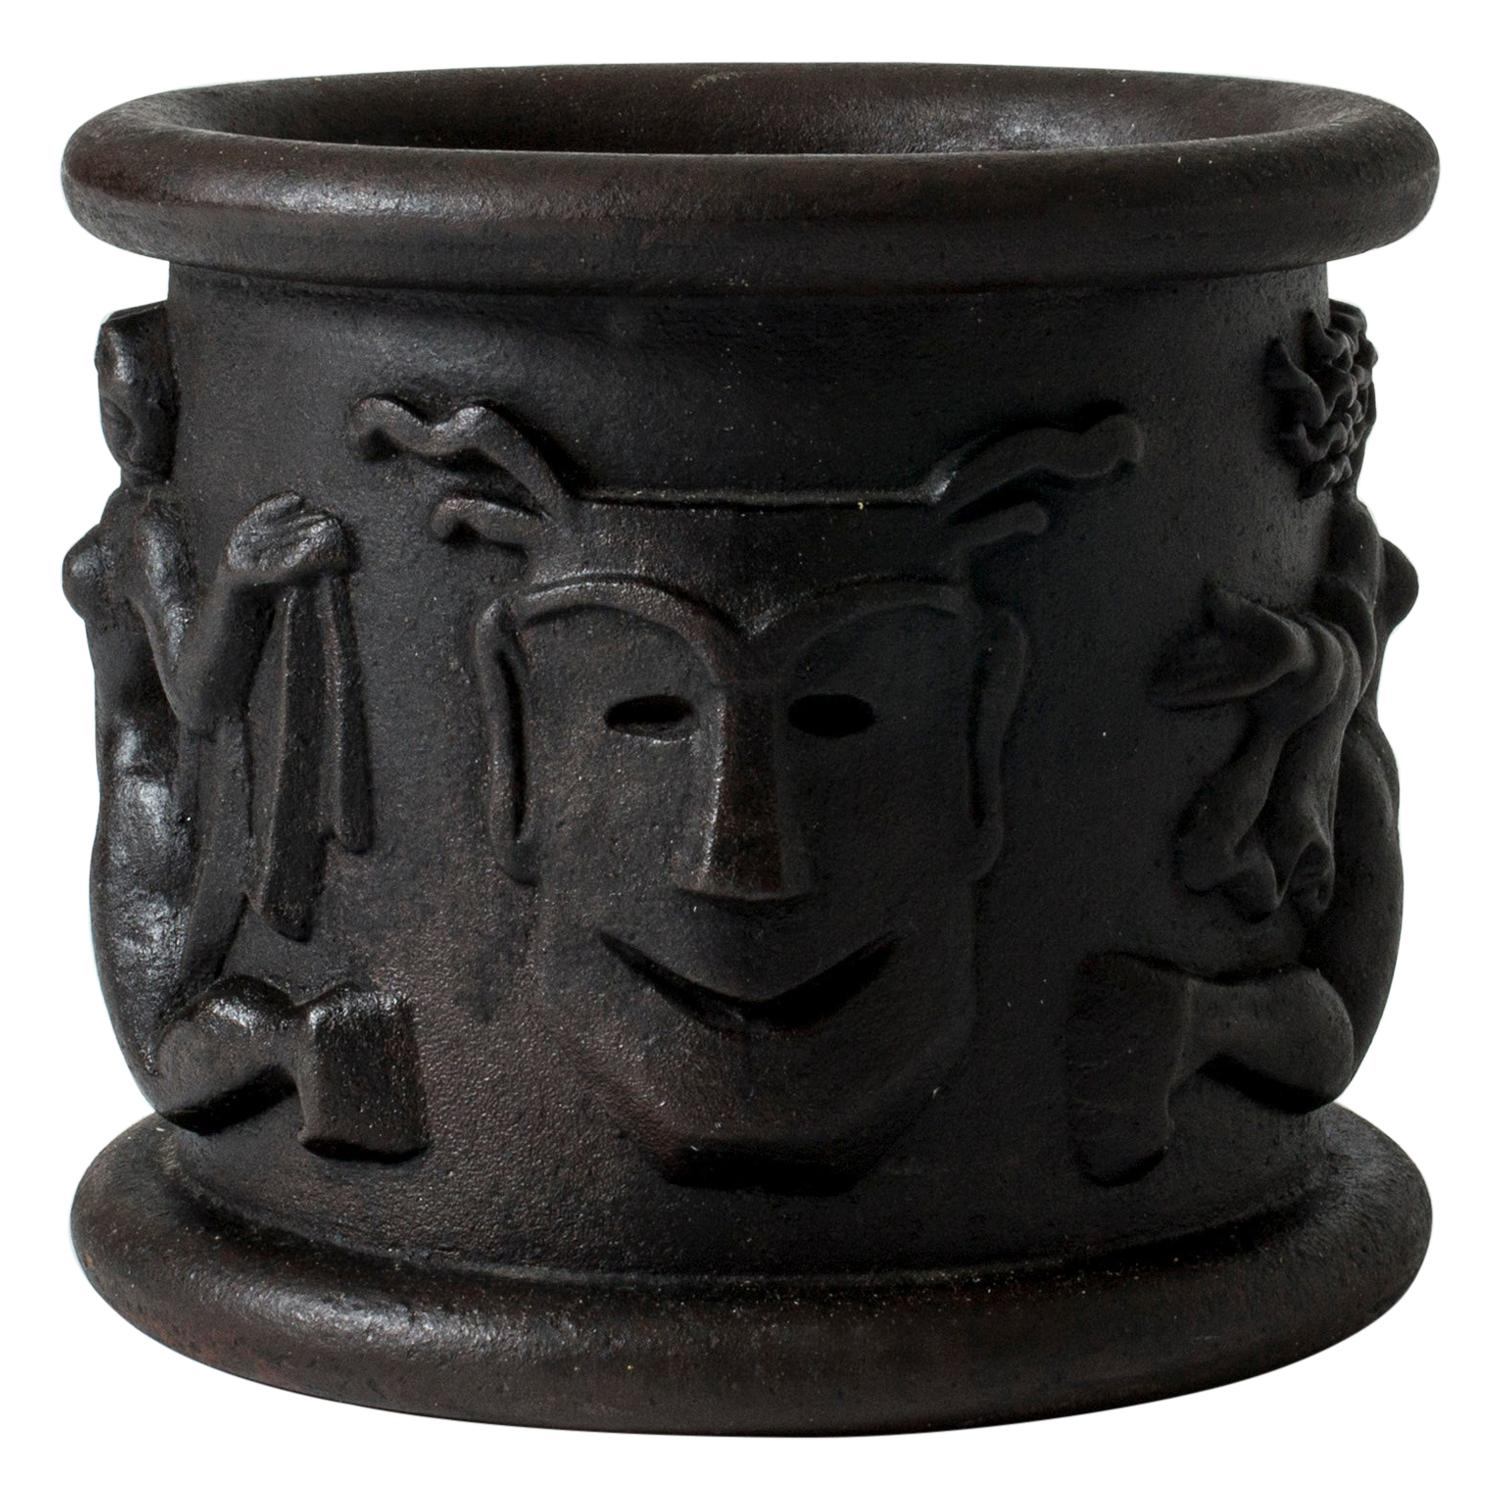 Cast Iron Flower Pot Model #1 by Anna Petrus for Näfveqvarns Bruk, Sweden, 1920s